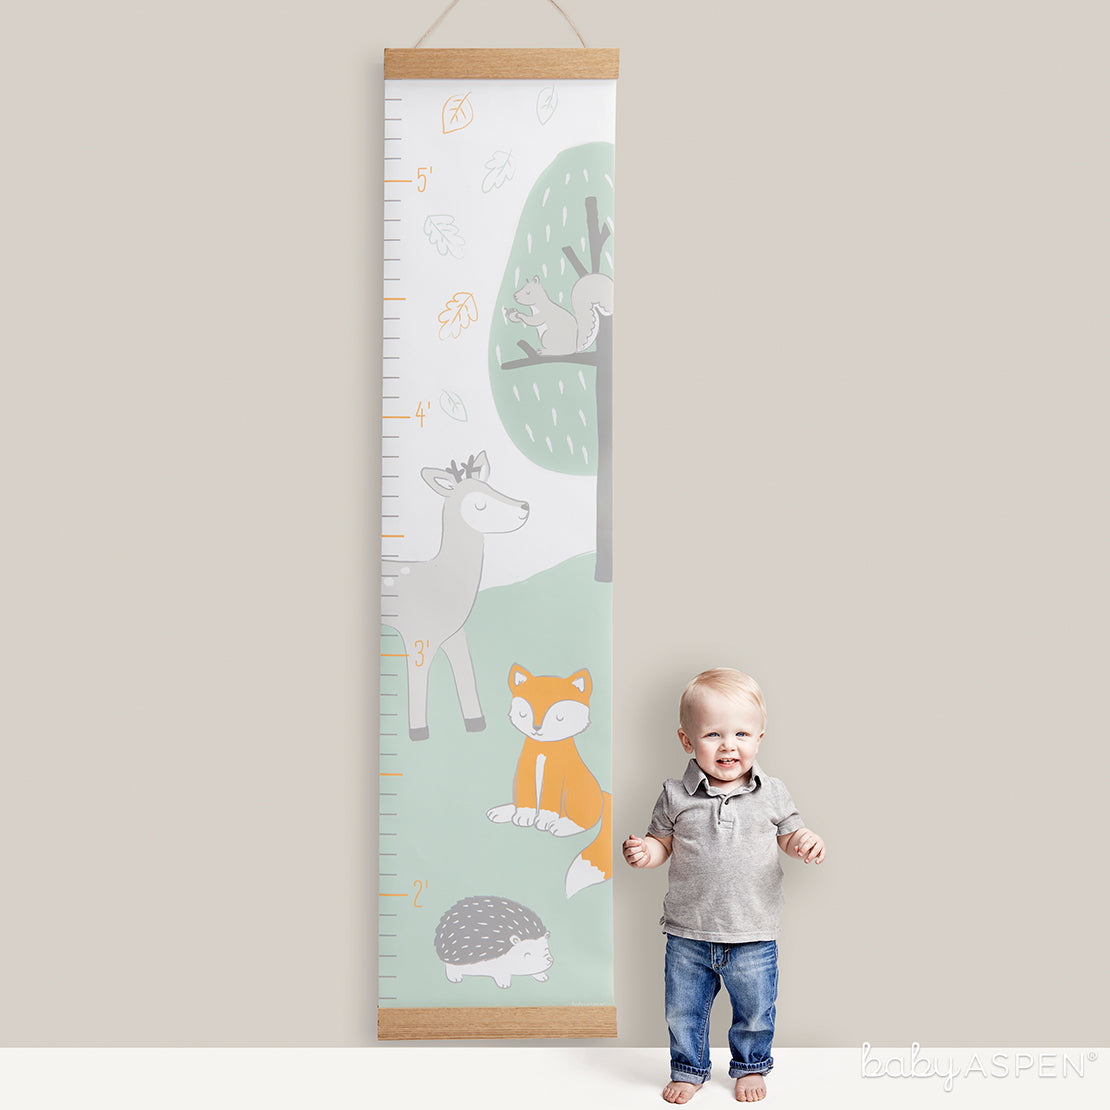 Woodlands Growth Chart   7 Easy Room Decor From Baby to Toddler   Baby Aspen